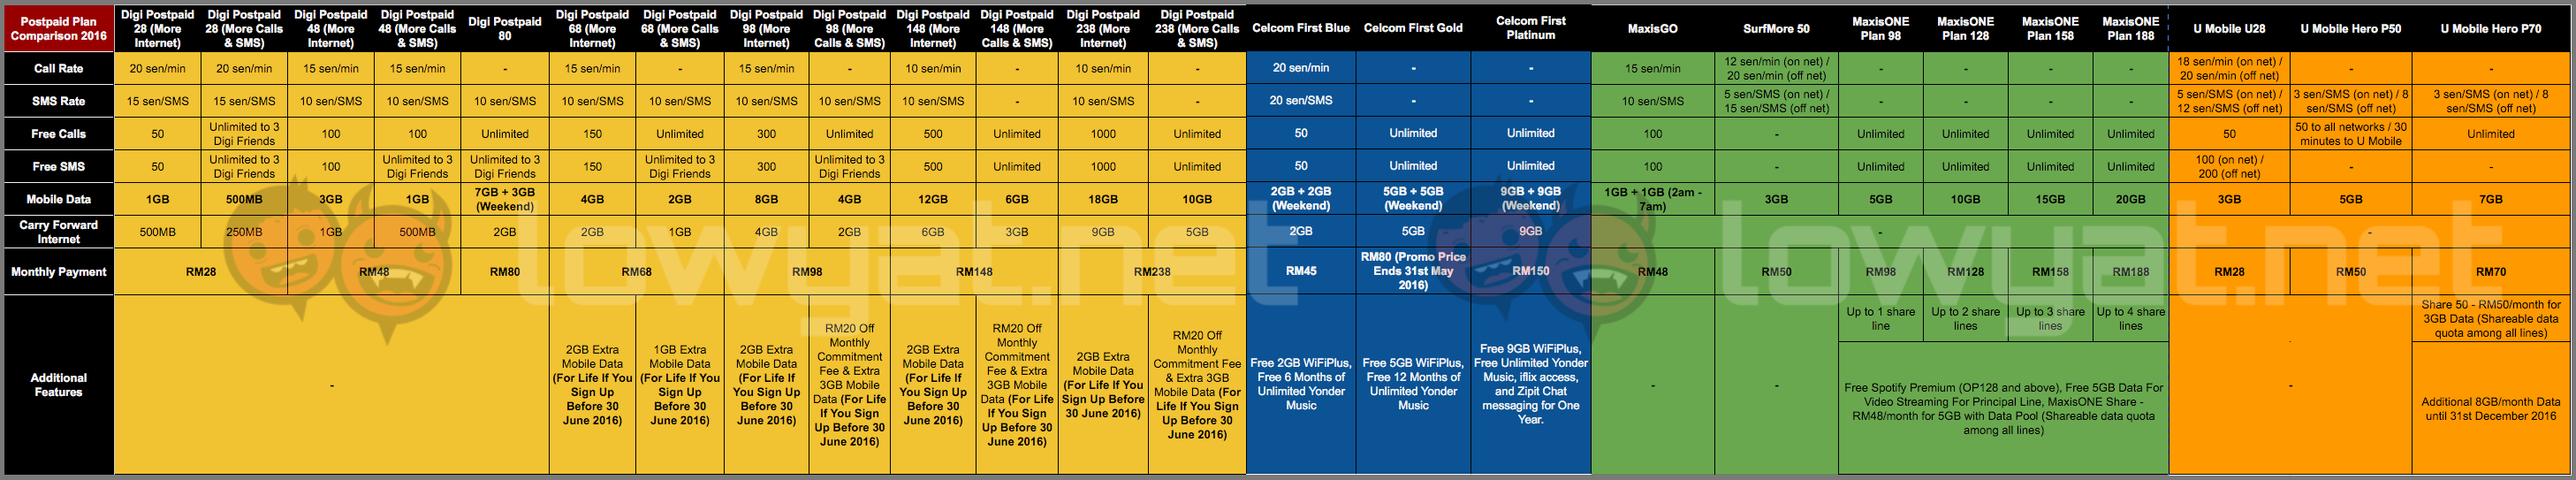 Ultimate-Postpaid-Plan-Comparison-Table-2016